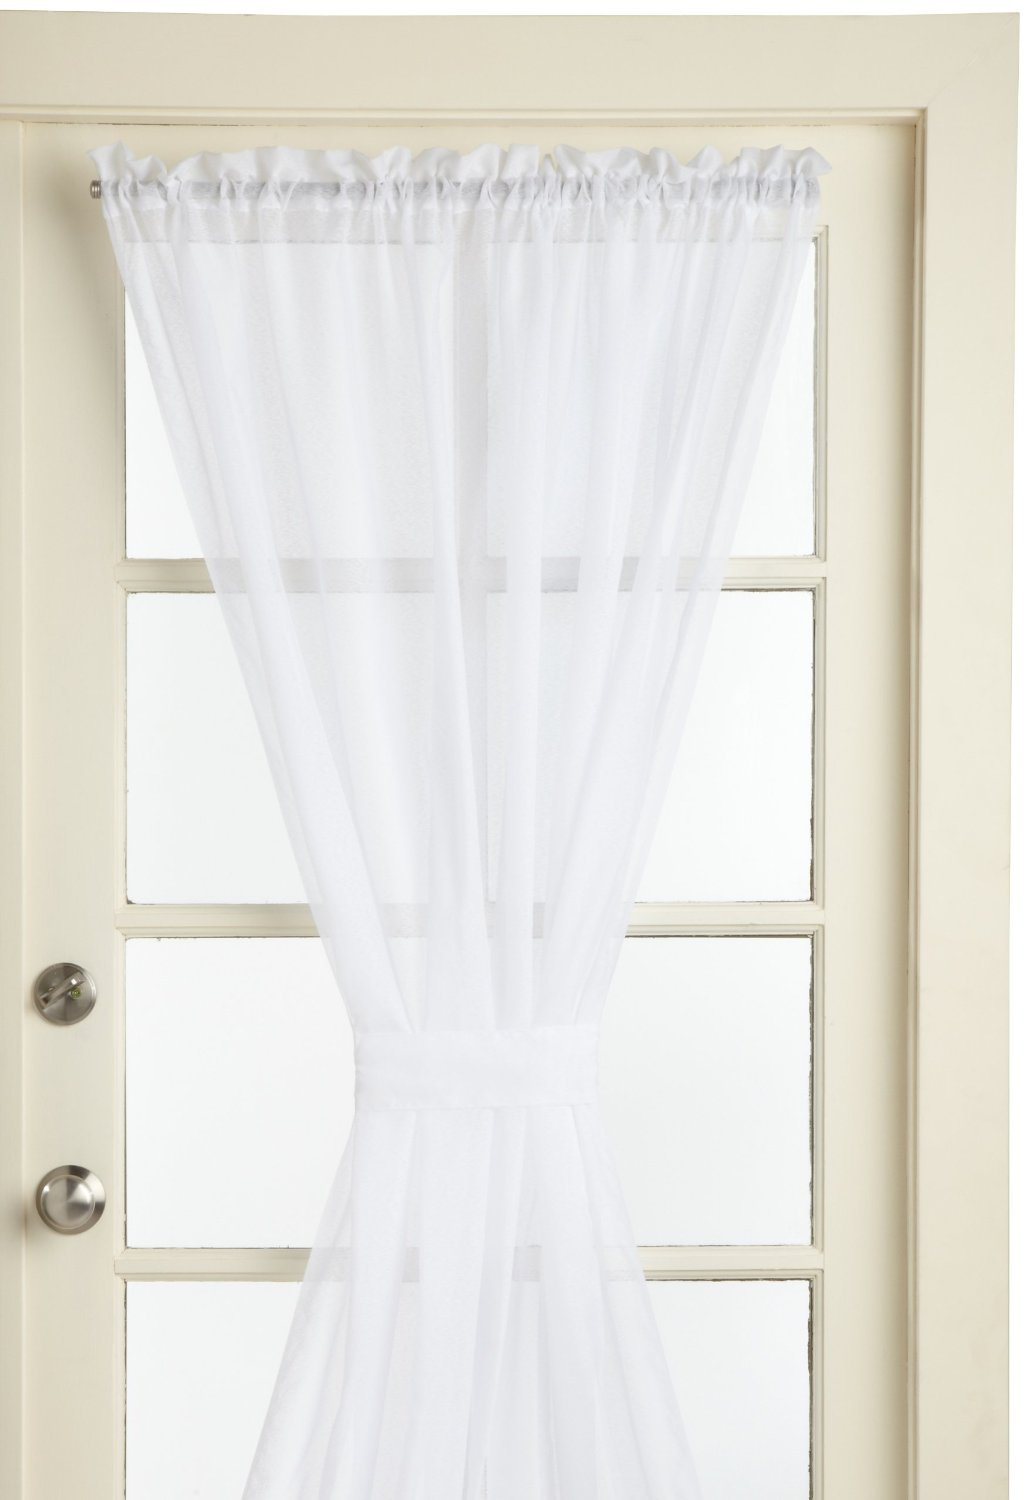 Lorraine Home Fashions Reverie Snow Voile Tailored Door Panels